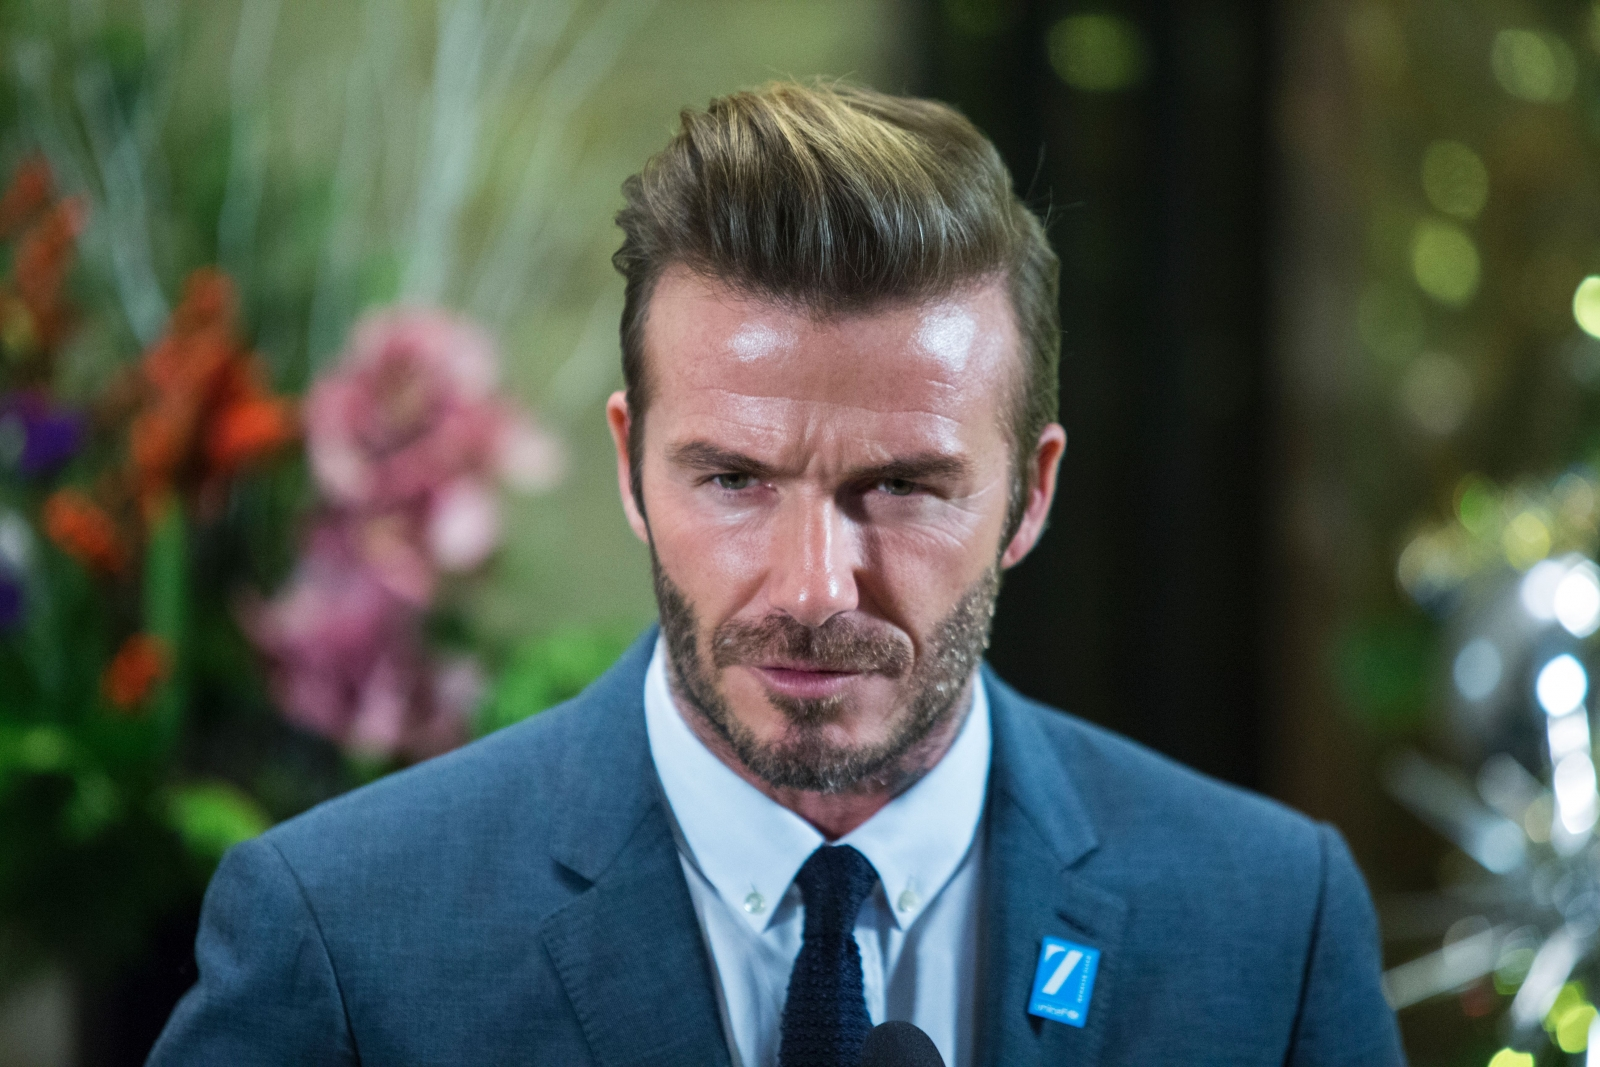 David Beckham admits his marriage 'mistakes', says he's ... David Beckham